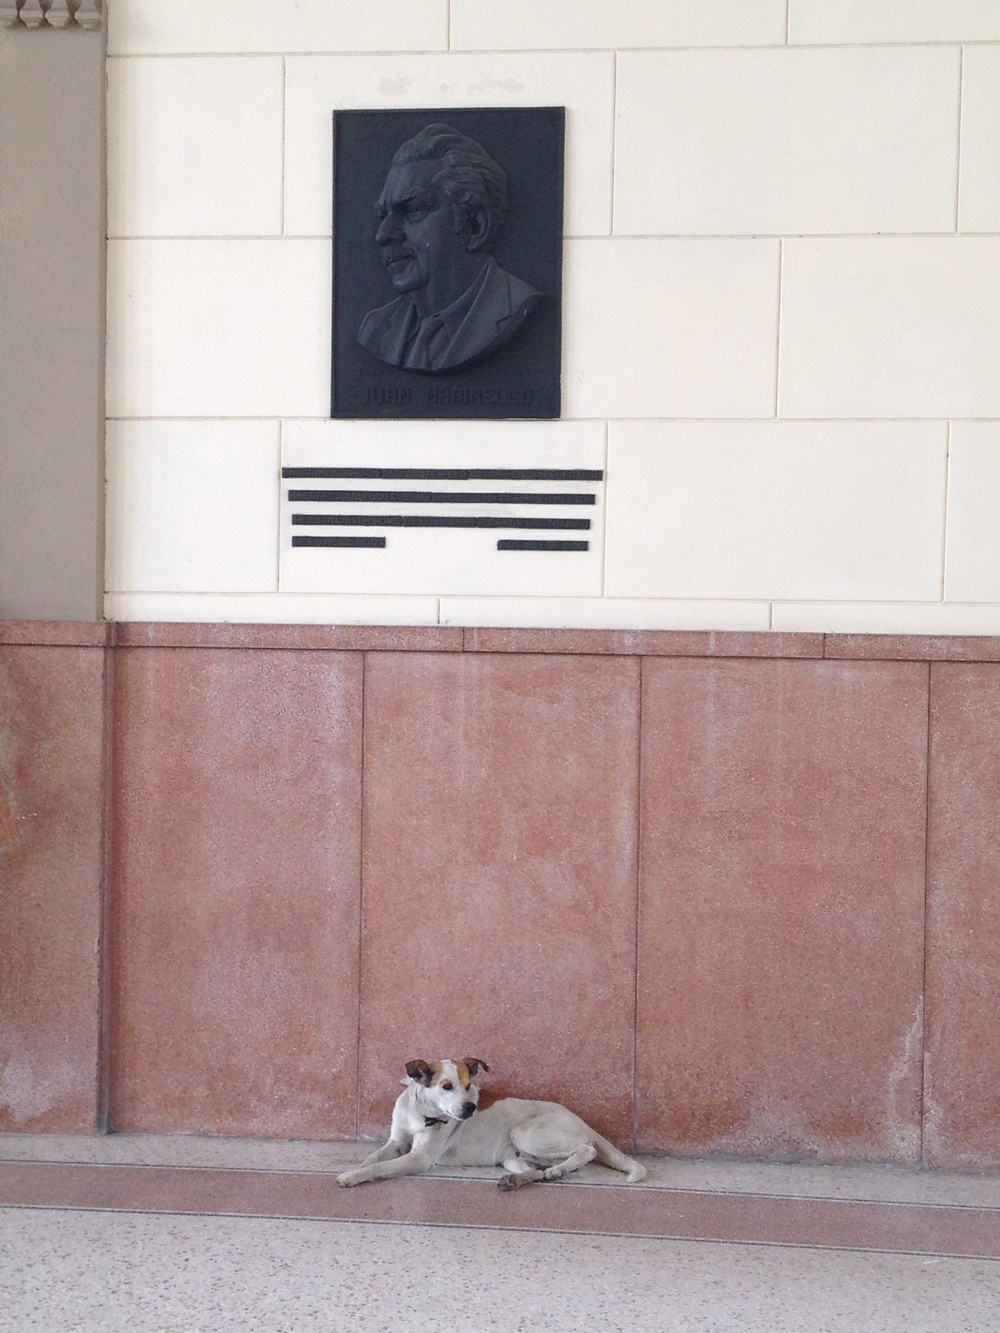 A dog at the University of Havana